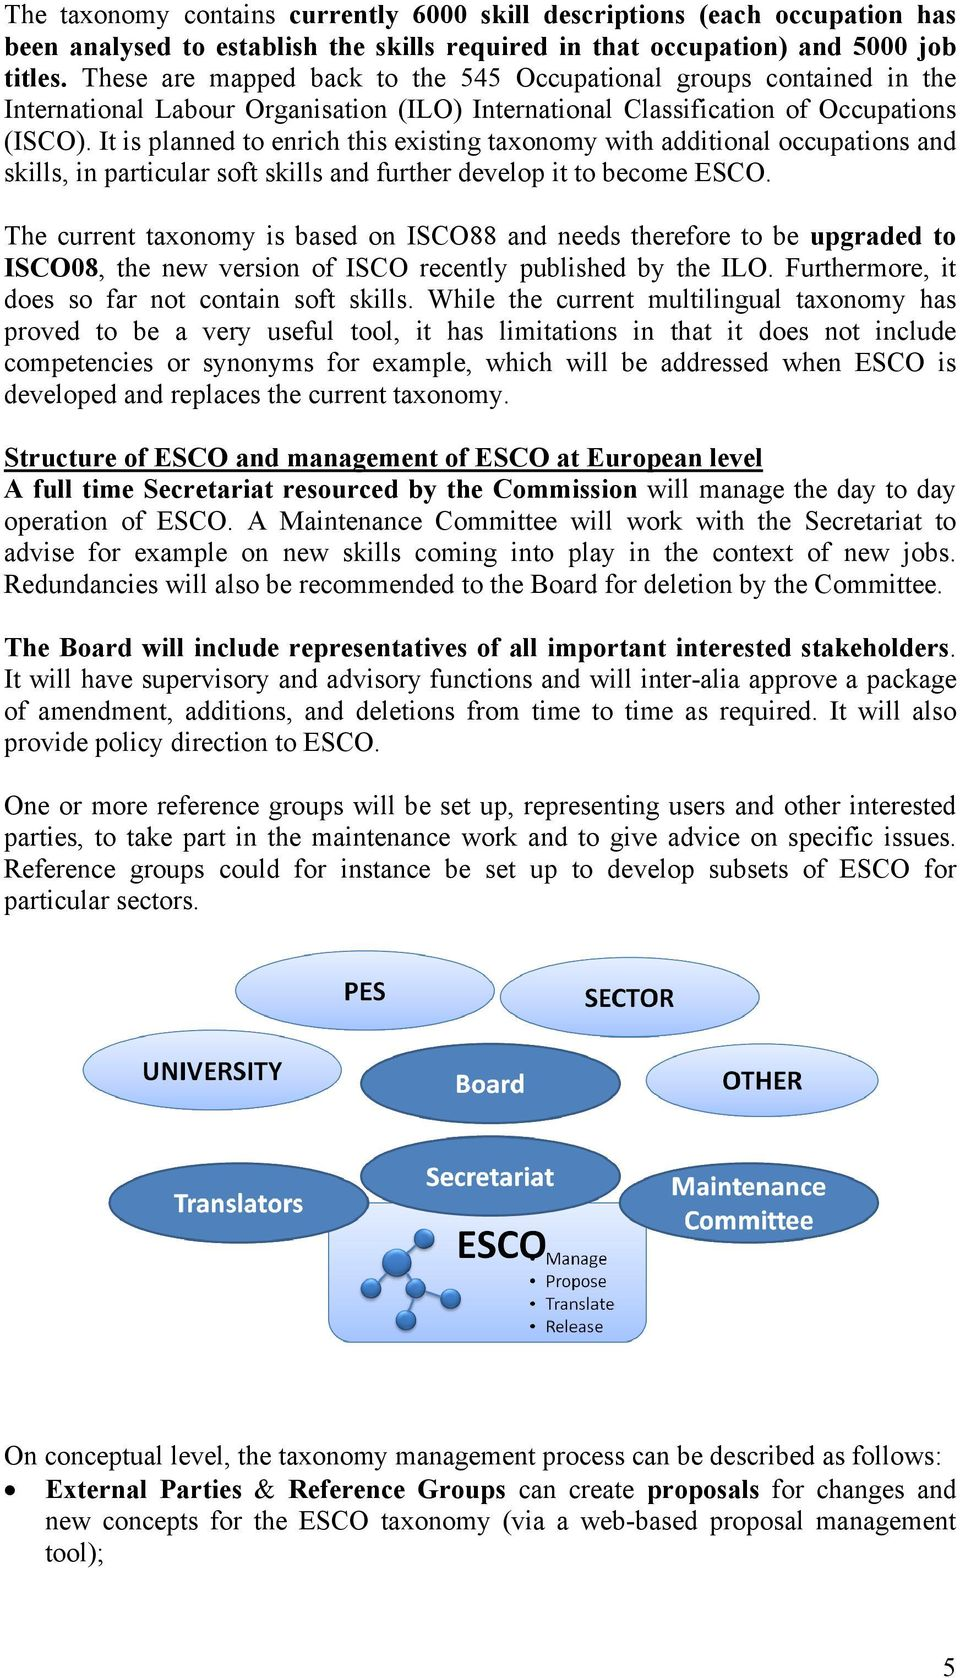 It is planned to enrich this existing taxonomy with additional occupations and skills, in particular soft skills and further develop it to become ESCO.